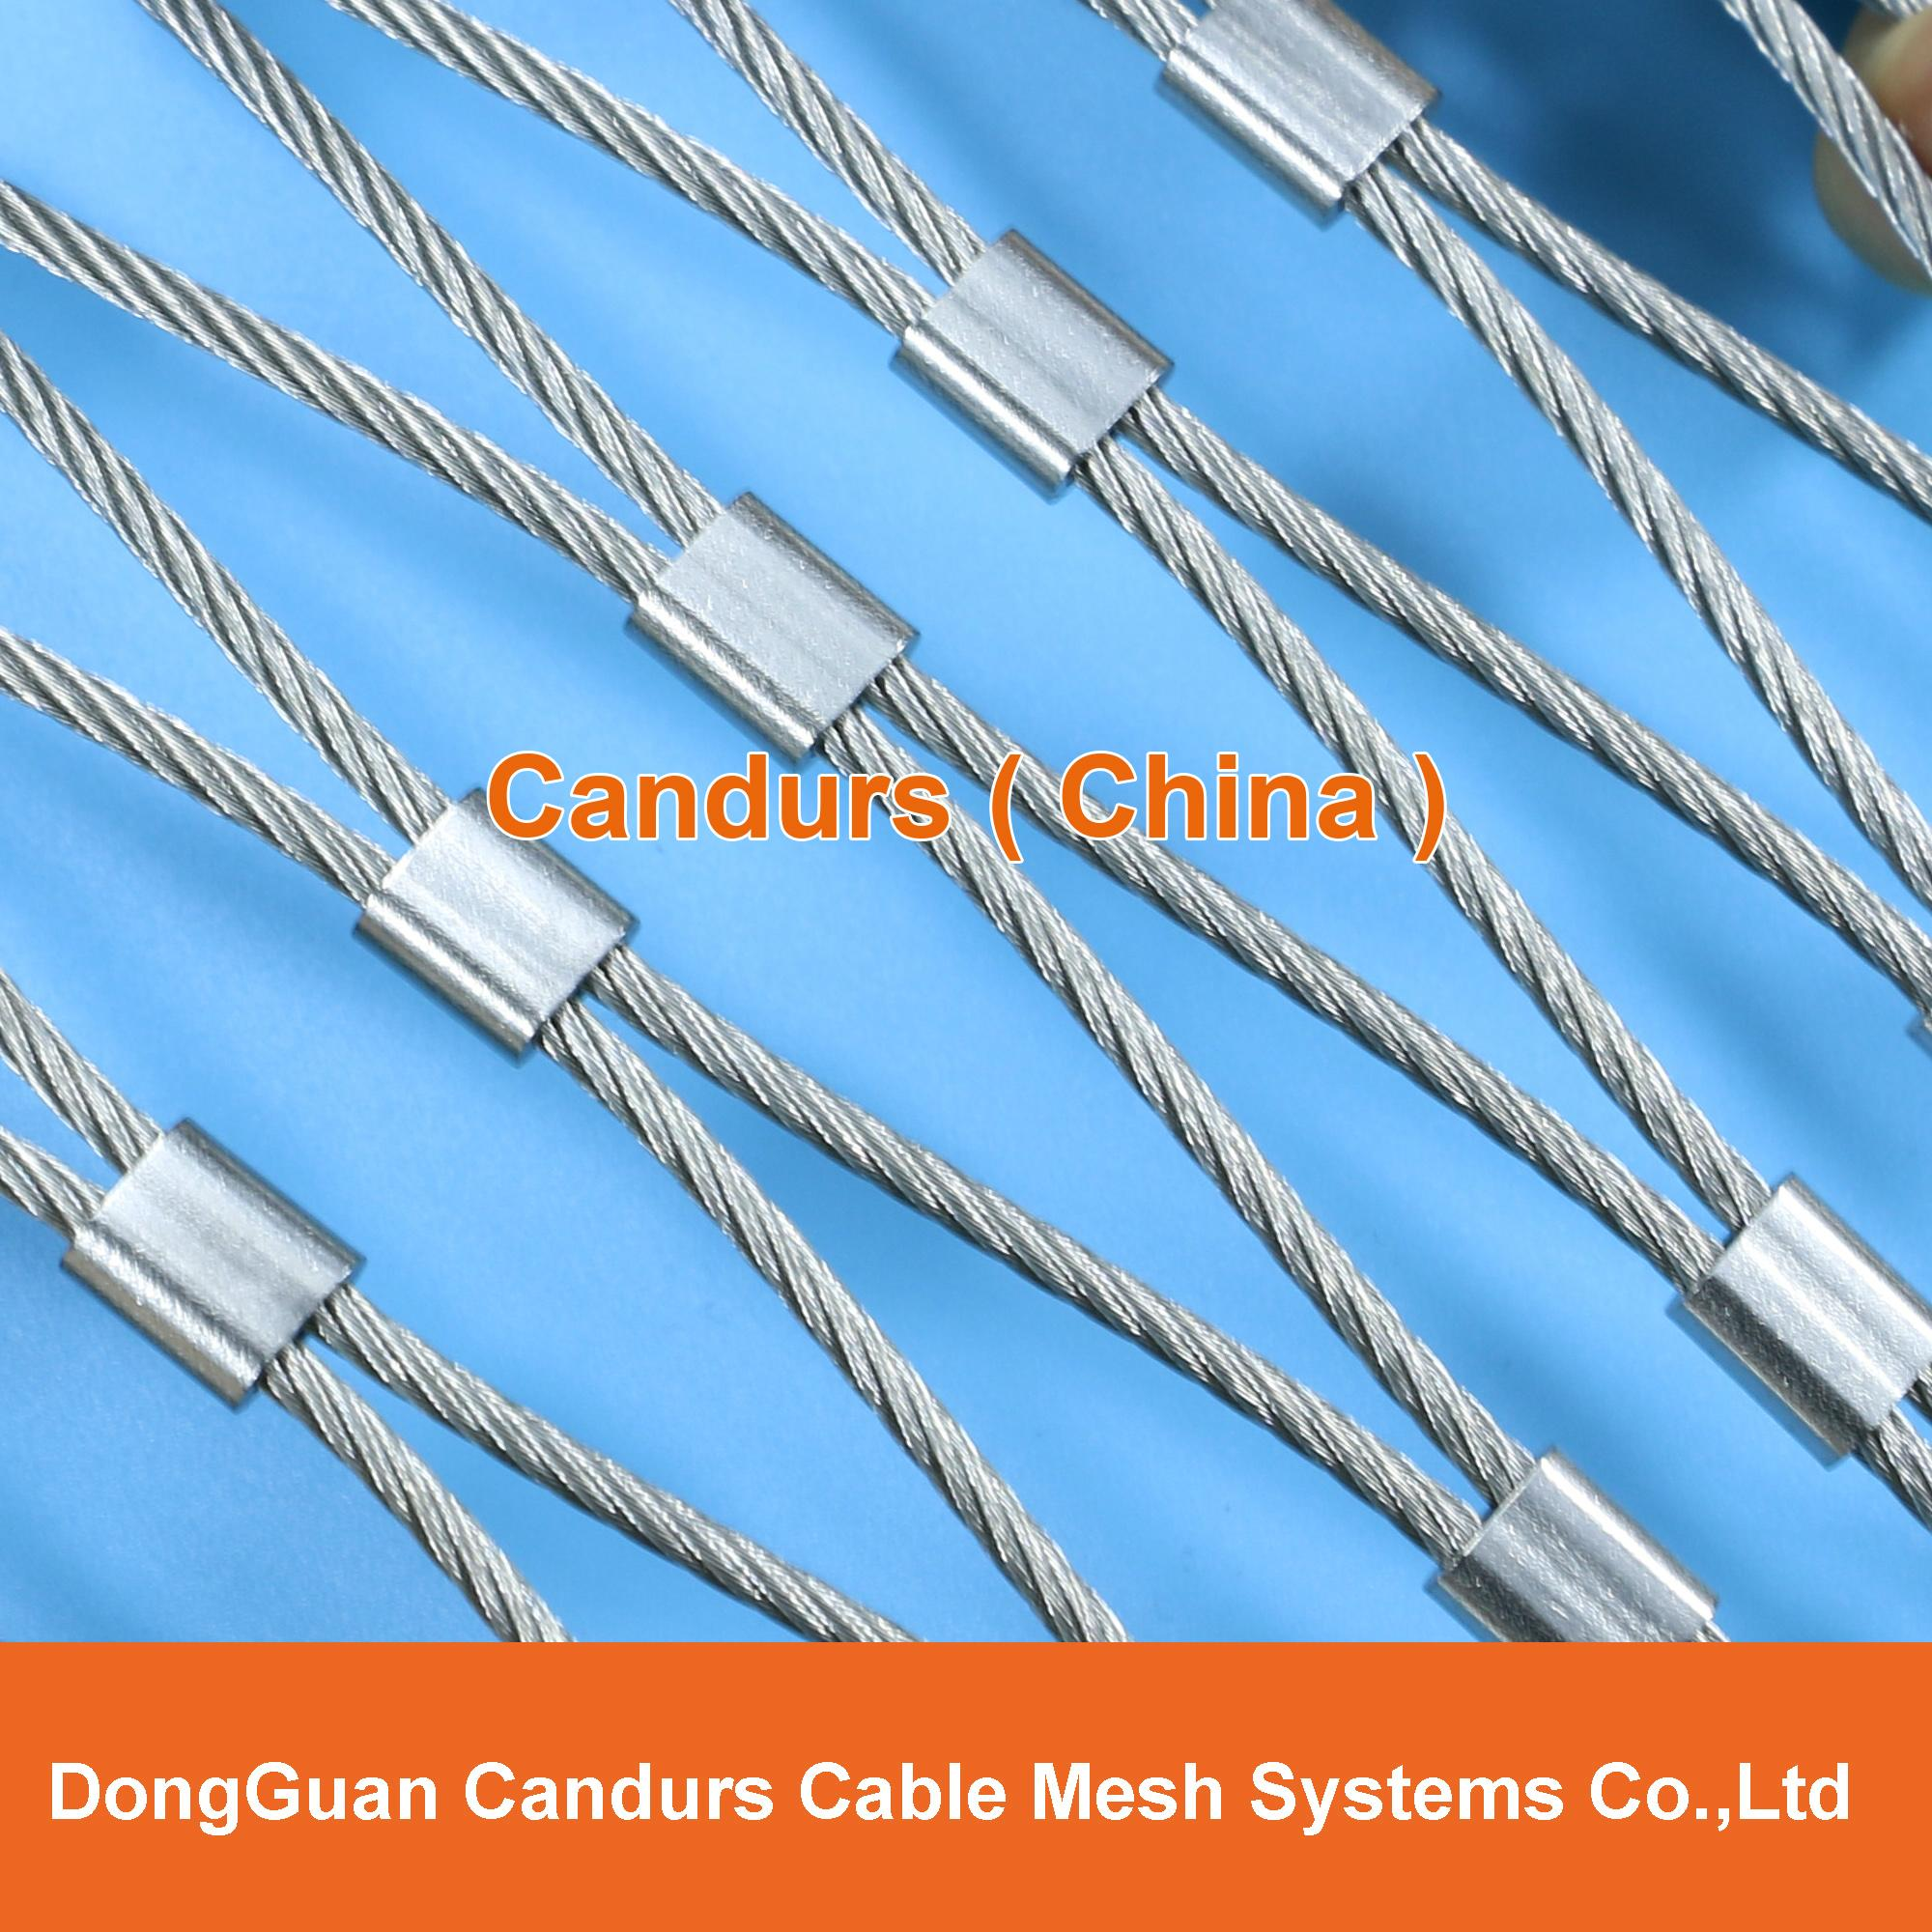 7x7 Stainless Steel Bridge Cable Fence Decorrope